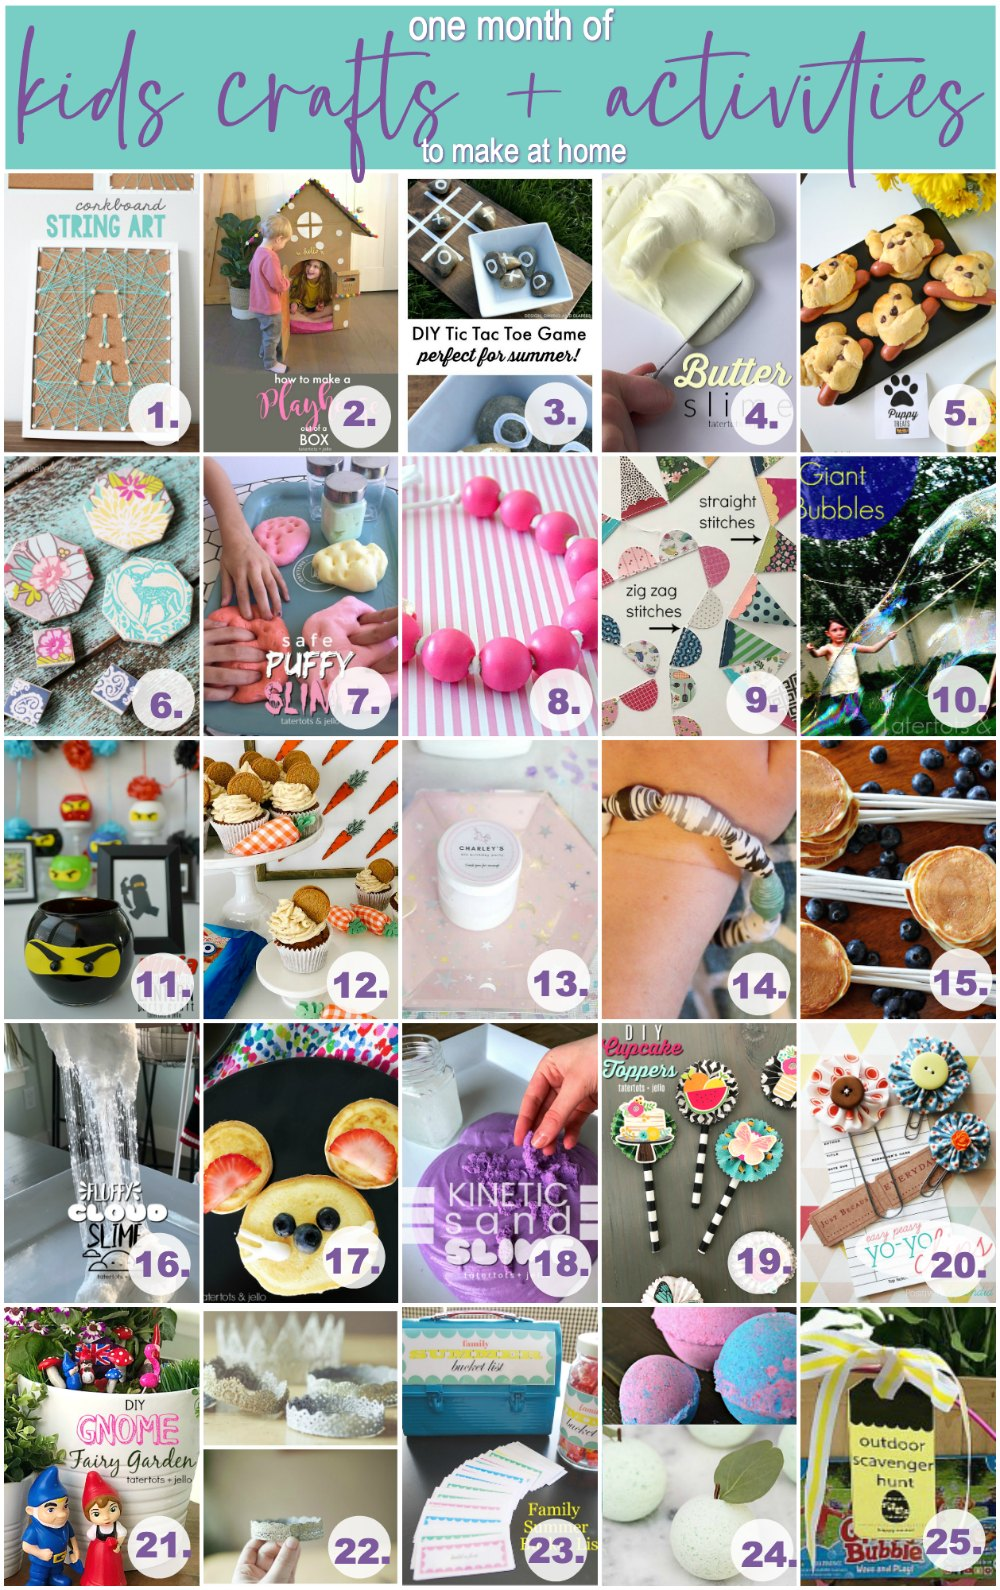 1 Month of Daily Kids Crafts and Activities to do at Home. Spend time at home creating fun and educational crafts, activities and memories with your kids - with easy Amazon shopping lists.